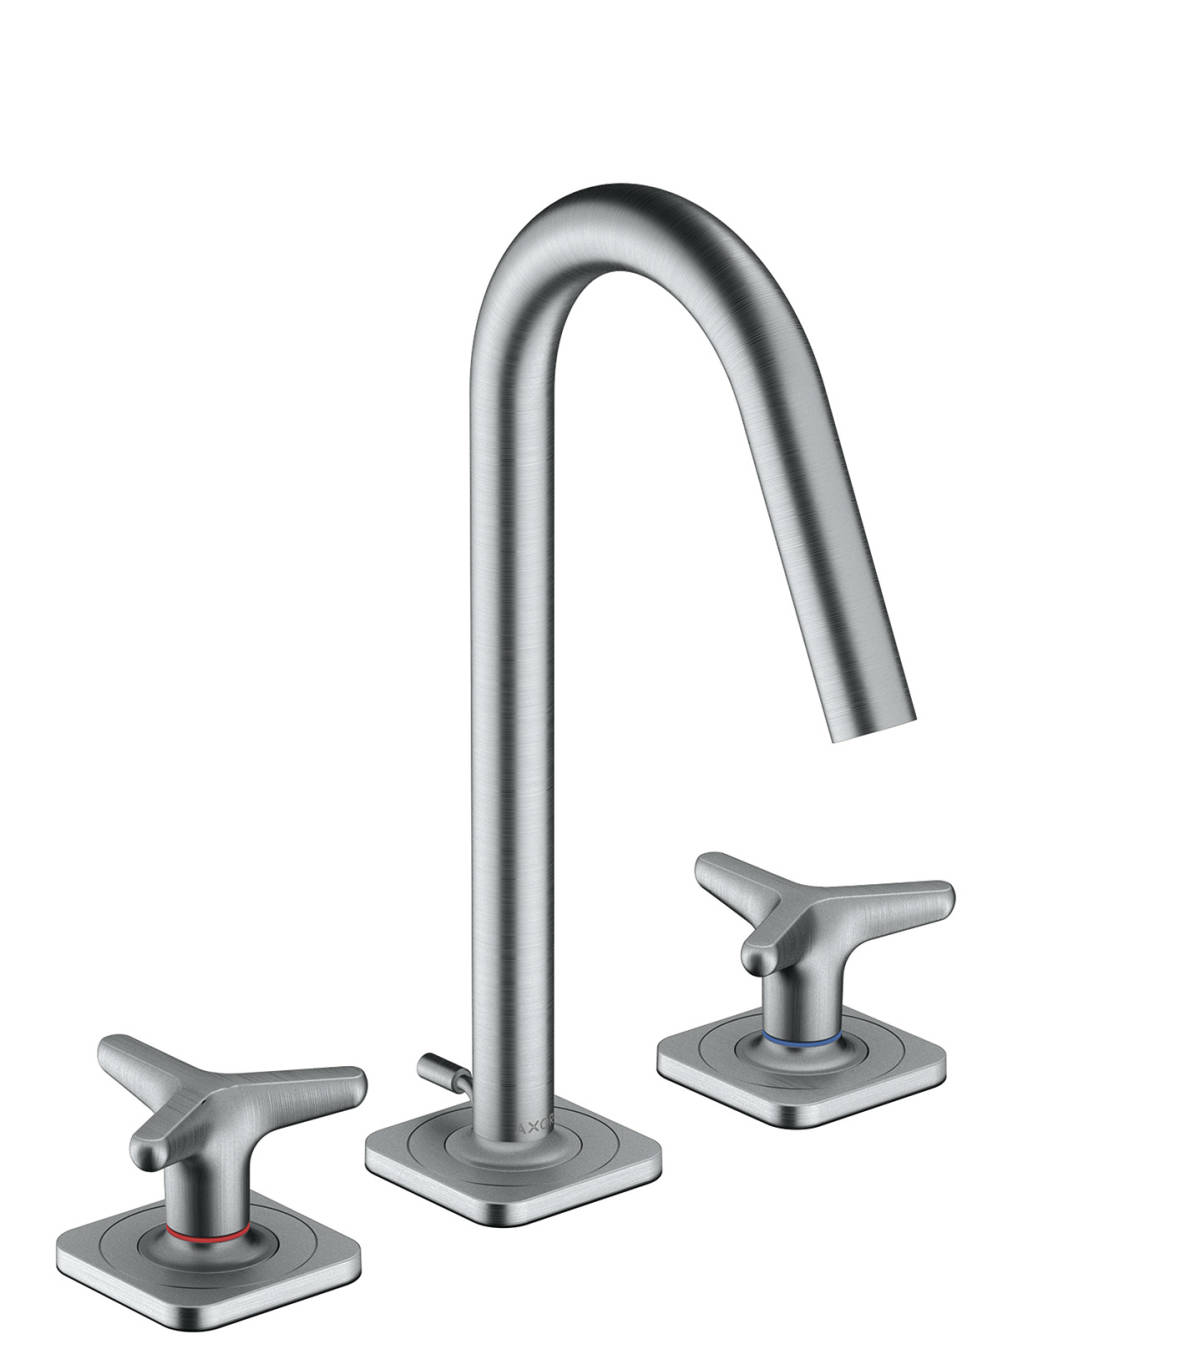 3-hole basin mixer 160 with star handles, escutcheons and pop-up waste set, Brushed Chrome, 34135260